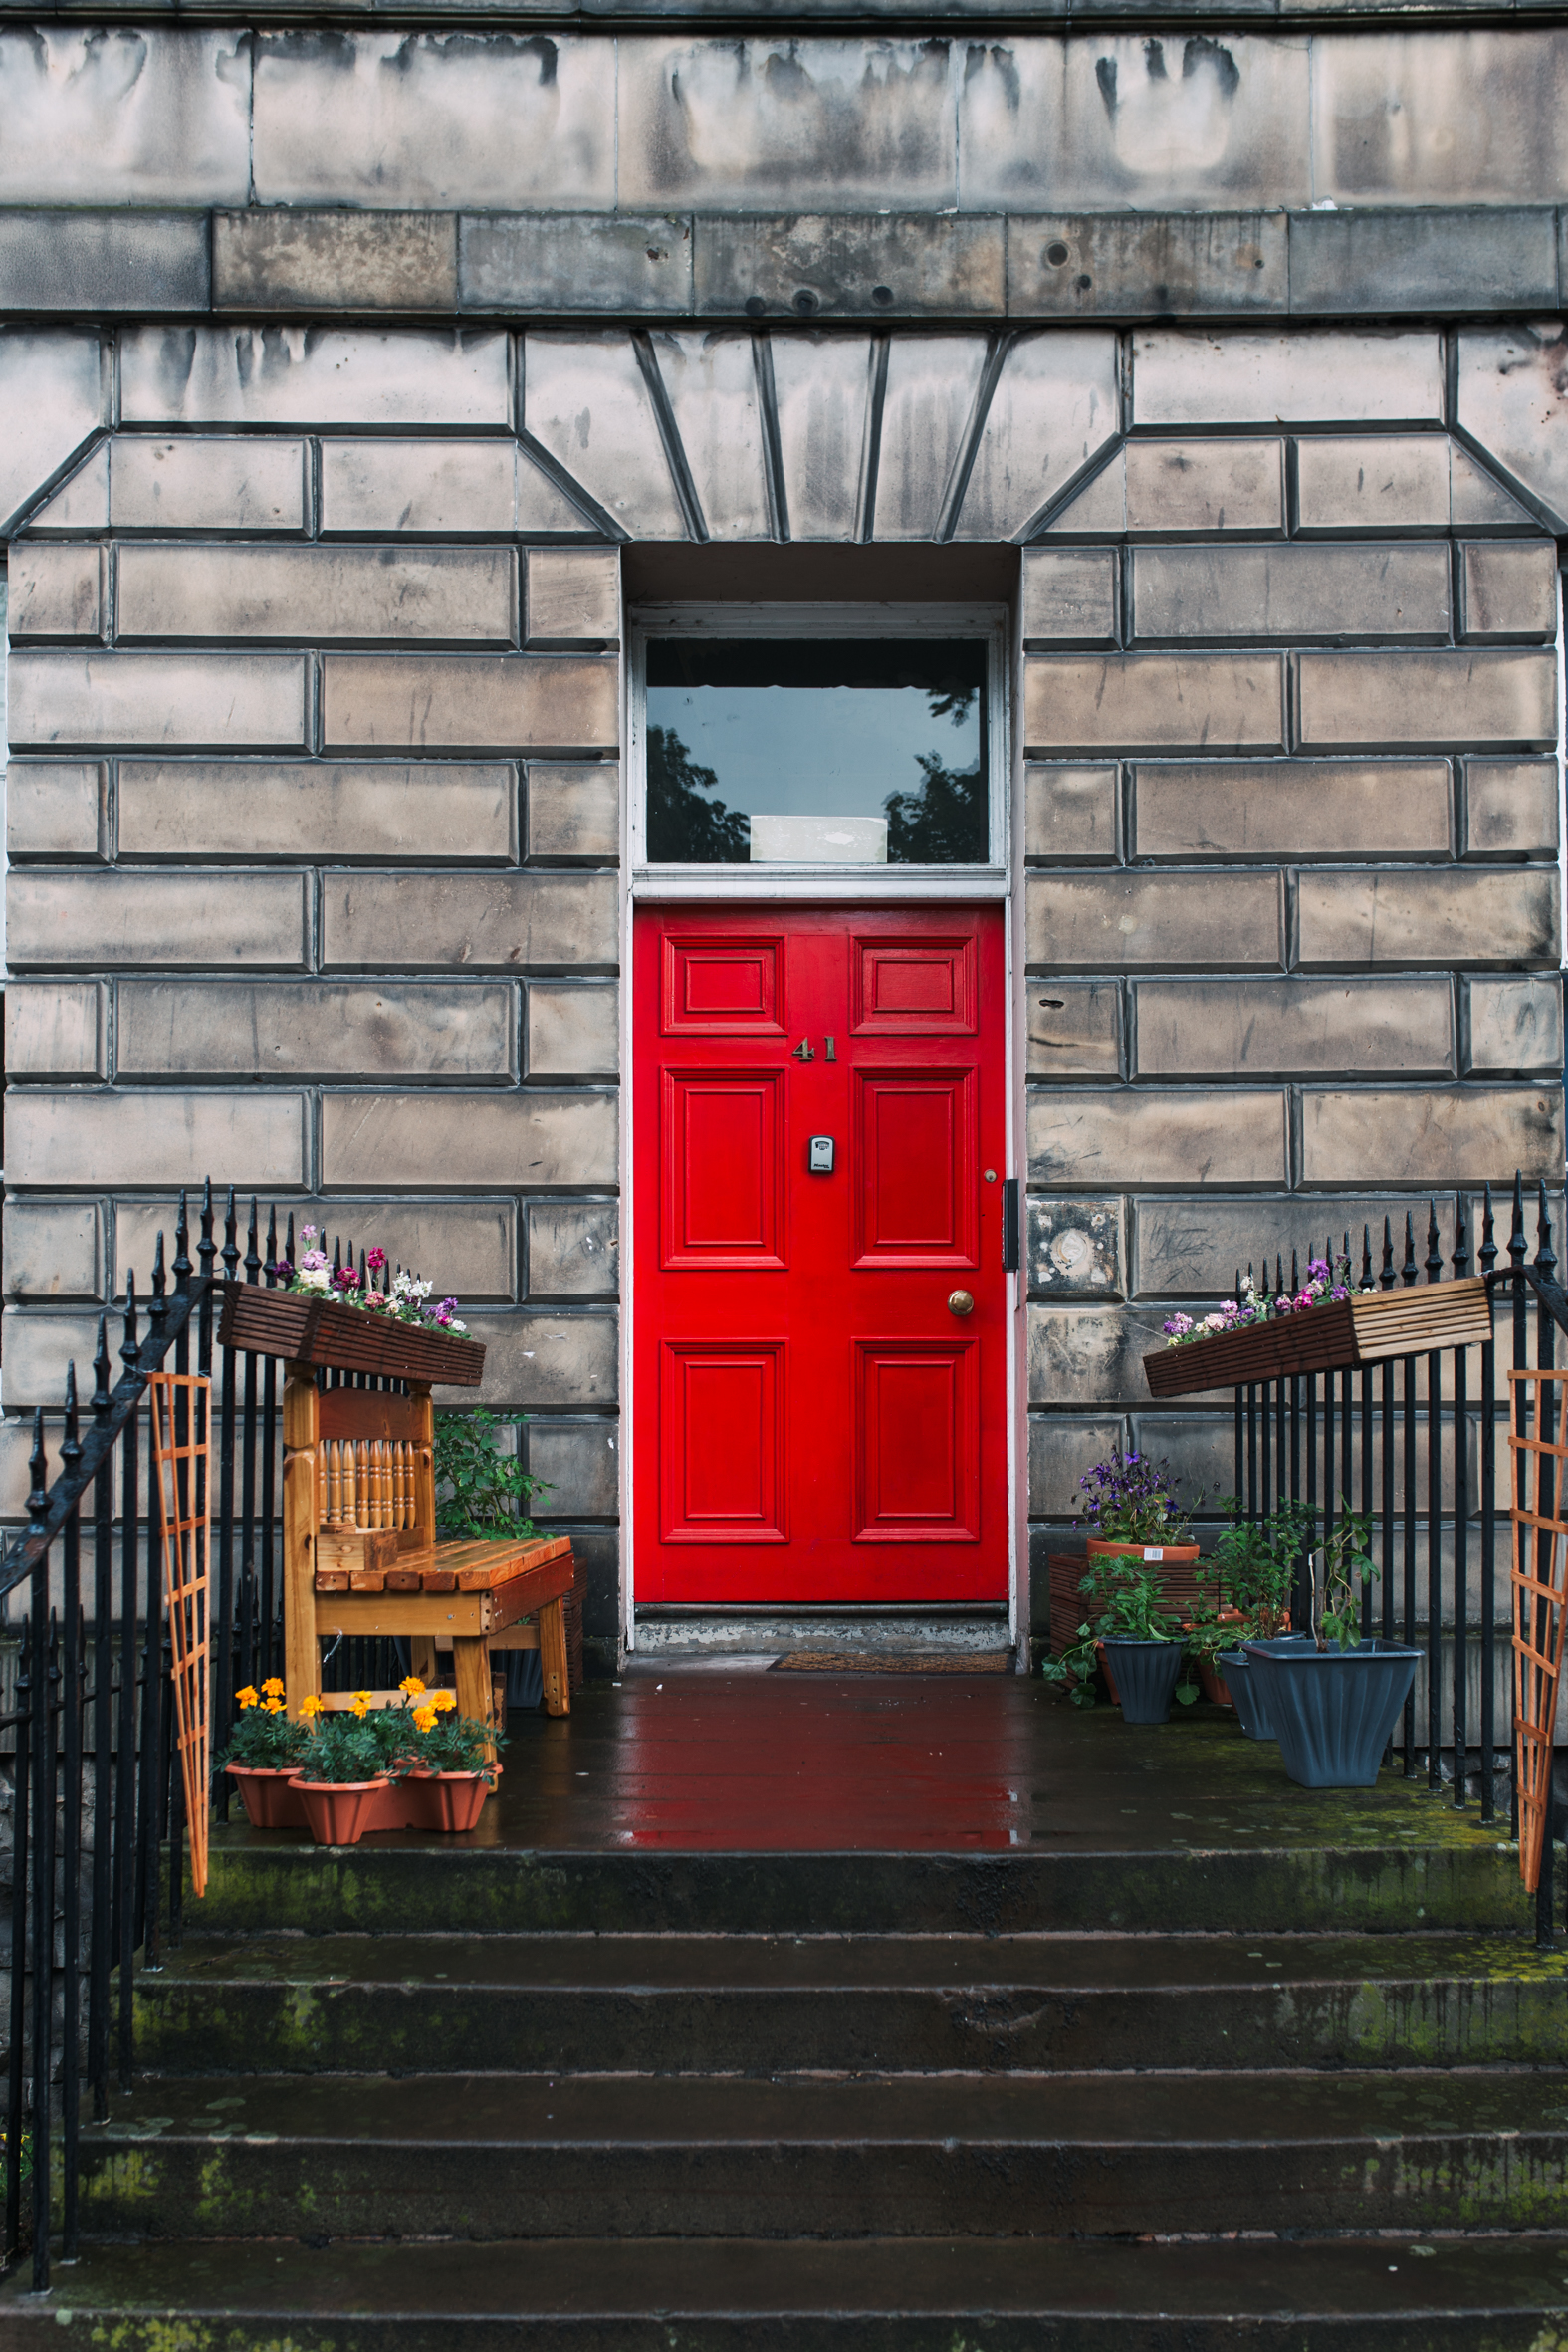 The light, the painted doors, the stone buildings, the fact that you needed a heavy blanket on your bed in the height of summer - everything about Edinburgh was charming. Could have stayed for months.